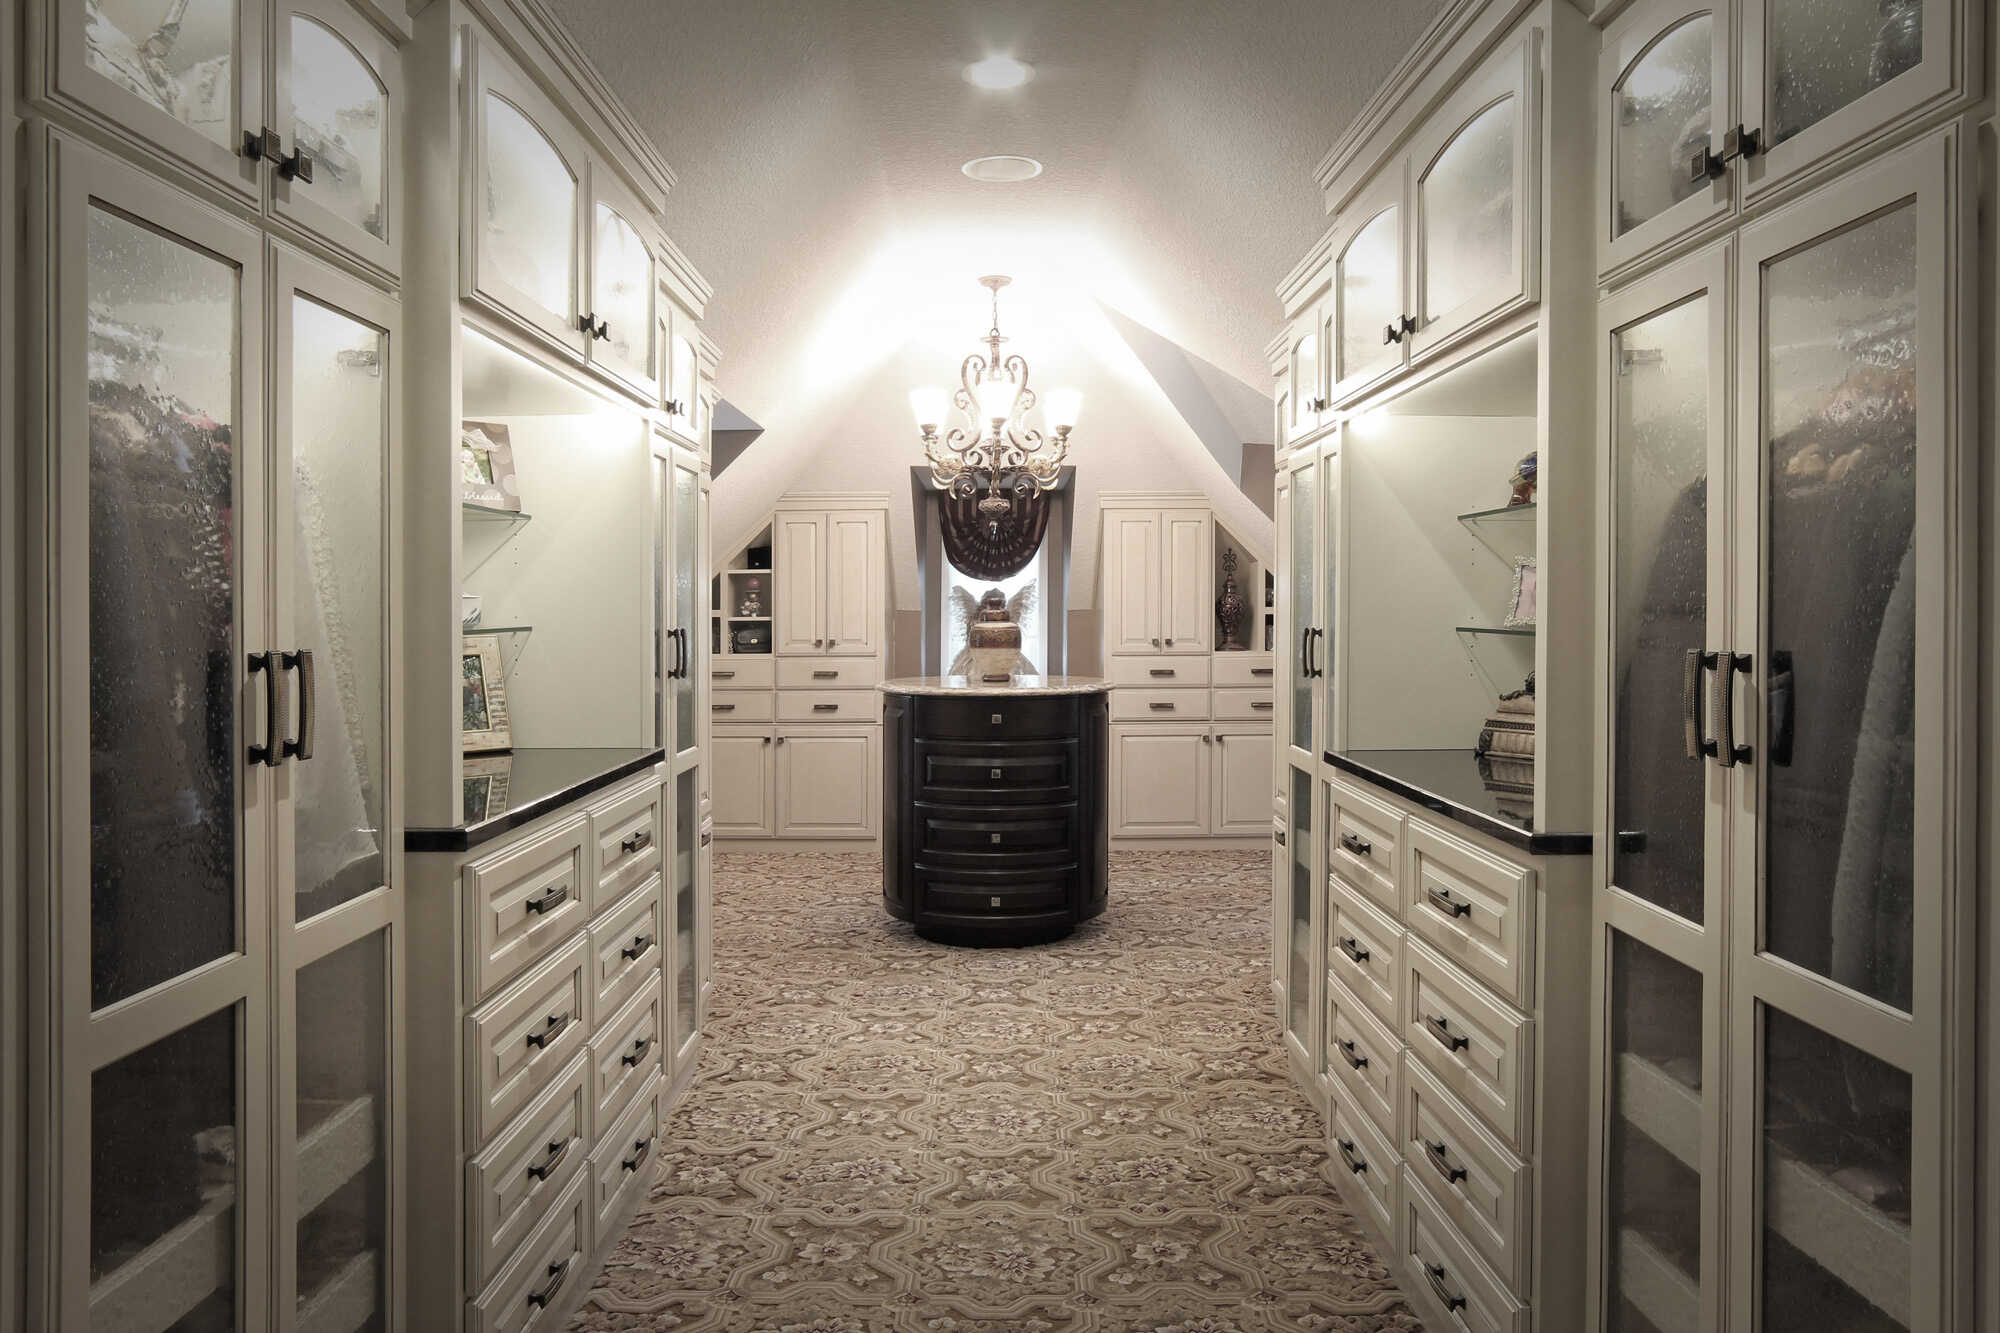 When The 2016 Top Shelf Closets Design Contest Was Announced We Thought We  Thought Weu0027d Give It A Try And See How We Stacked Up To Other Great  Companies ...